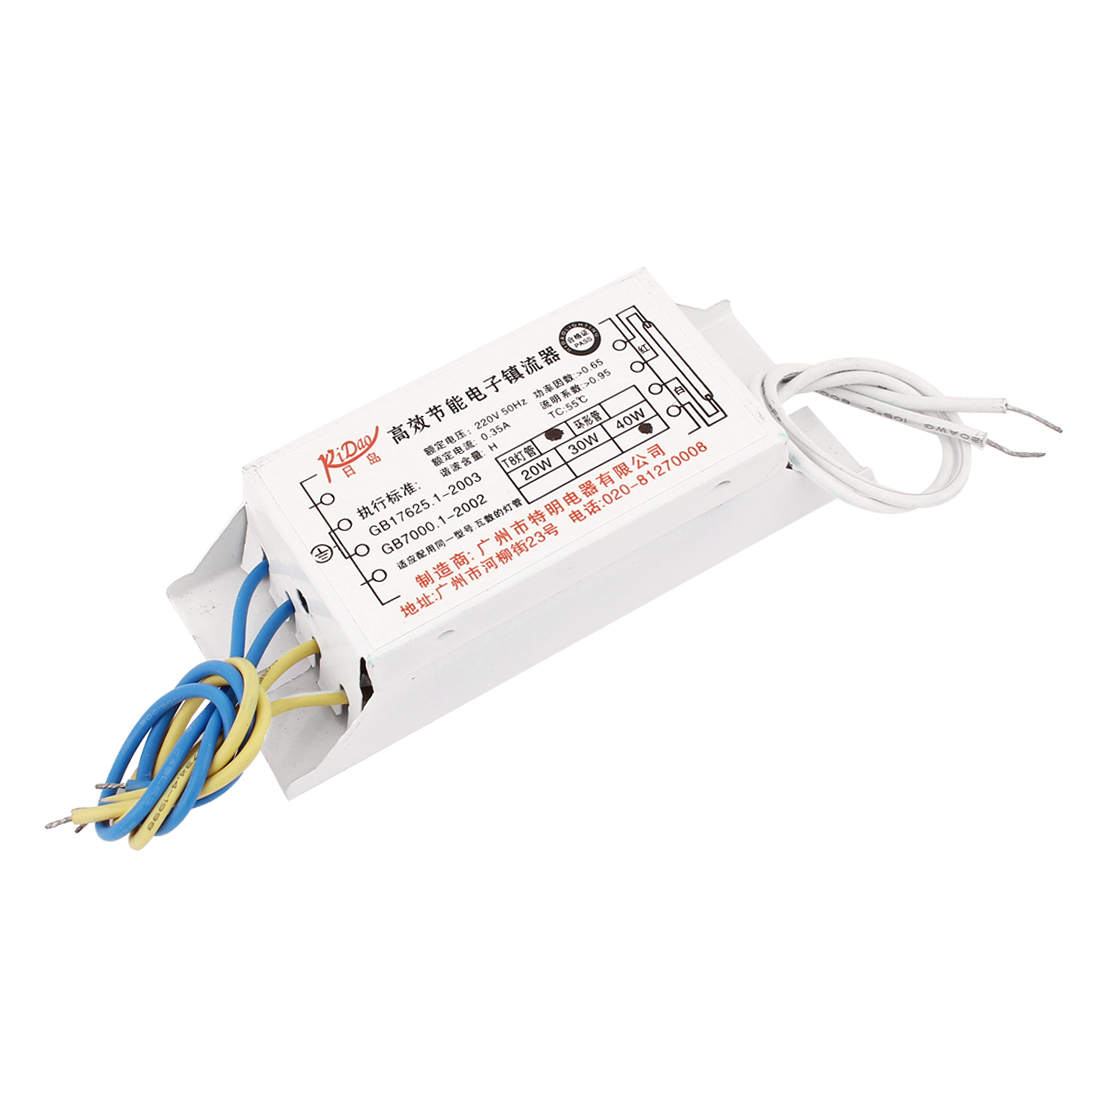 AC 220V 0.35A 40W Refrigerator Electronic Fluorescent Energy Saving Lamp Light Ballast